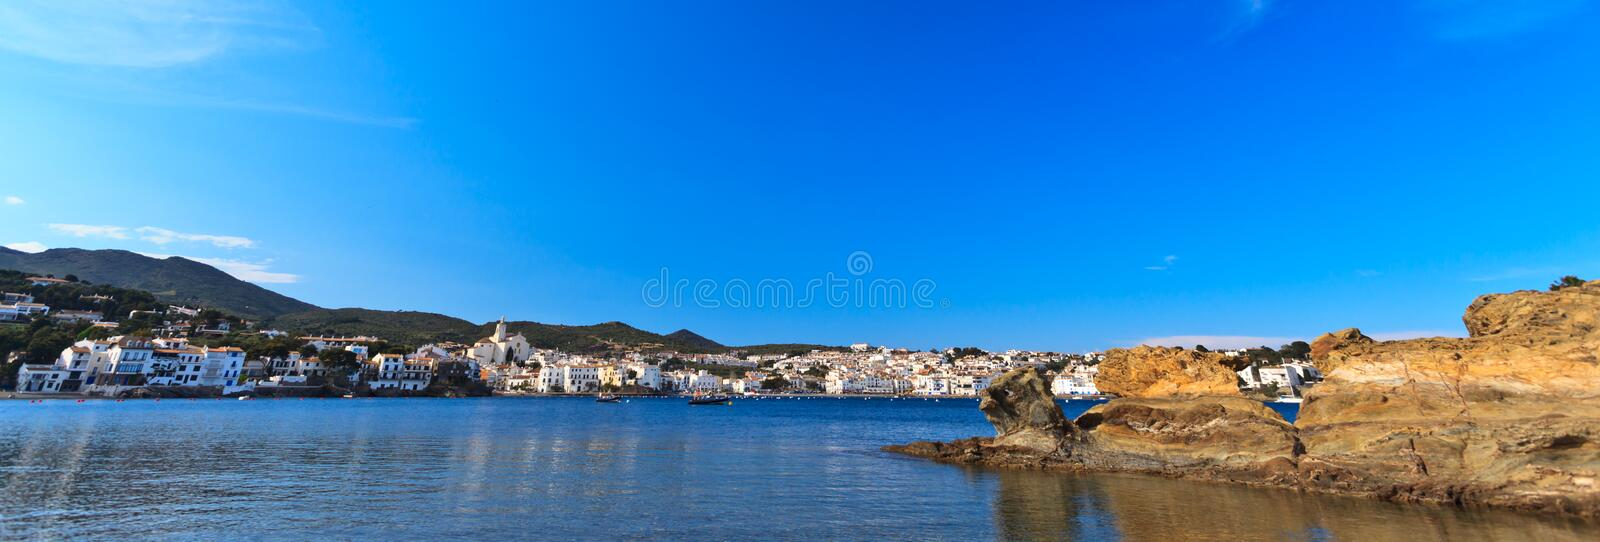 Spanish Mediterranean fishing village